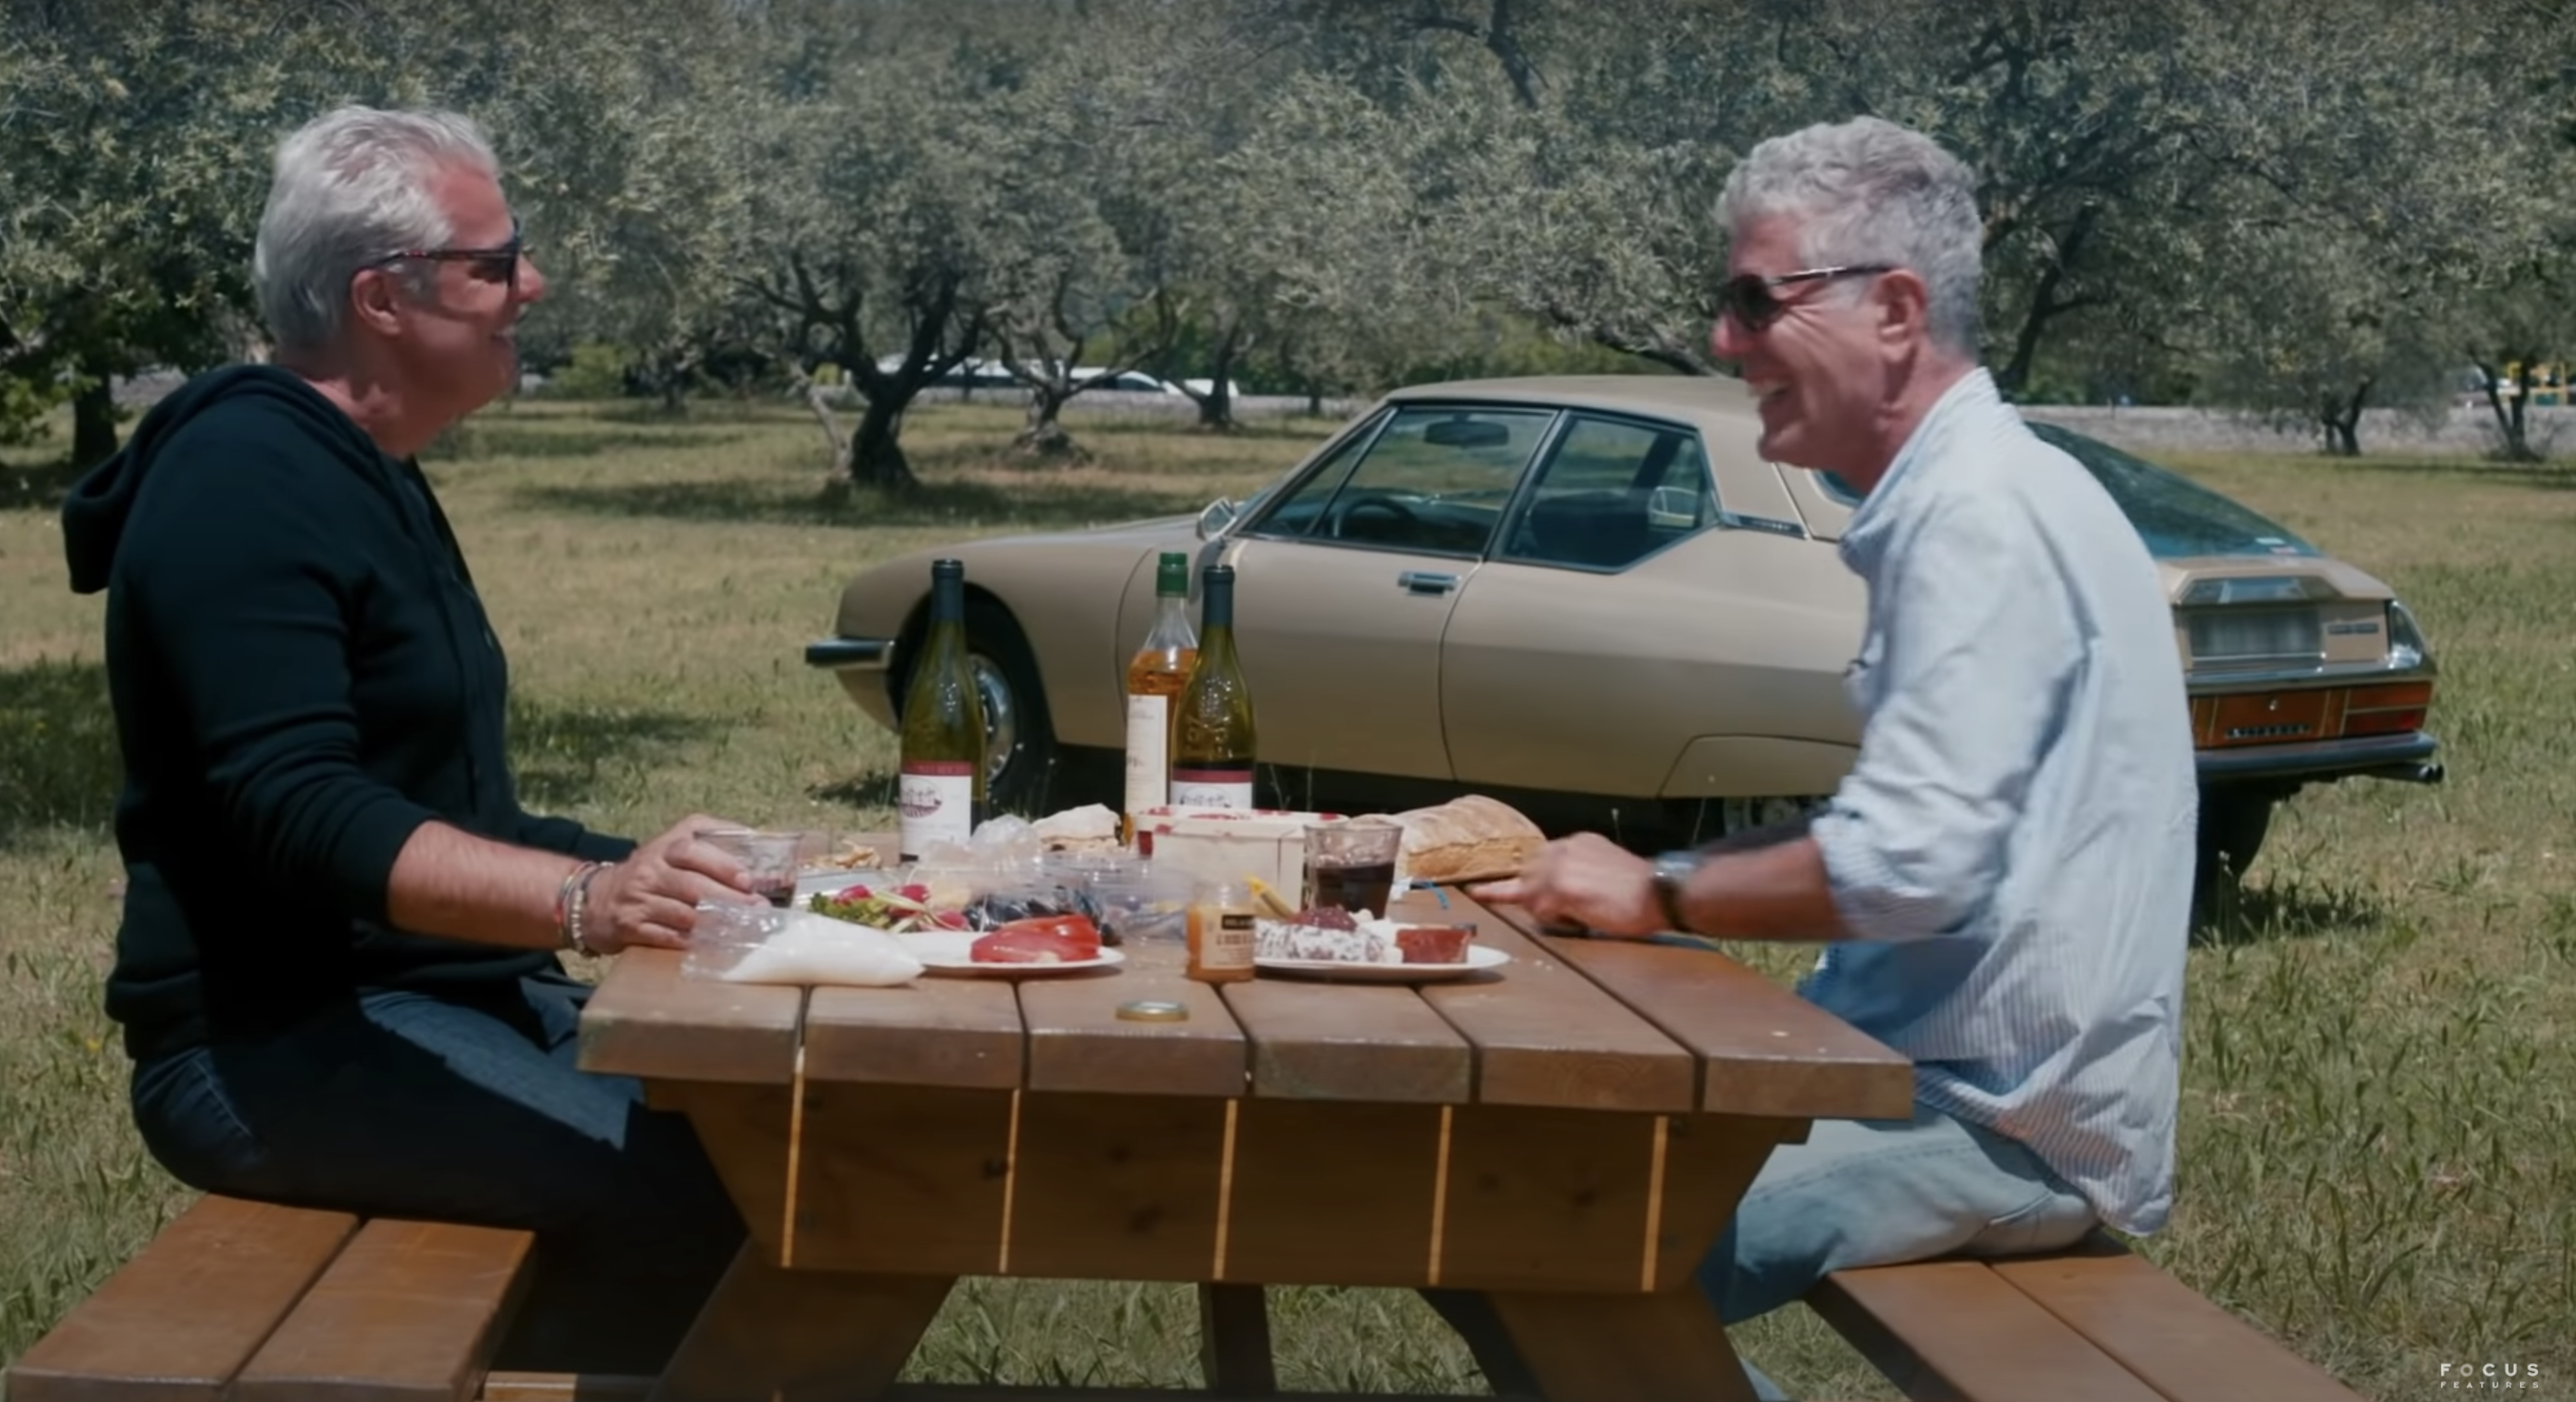 French chef Eric Ripert and Anthony Bourdain sit outside, laughing over a picnic of wine, bread, and cheese